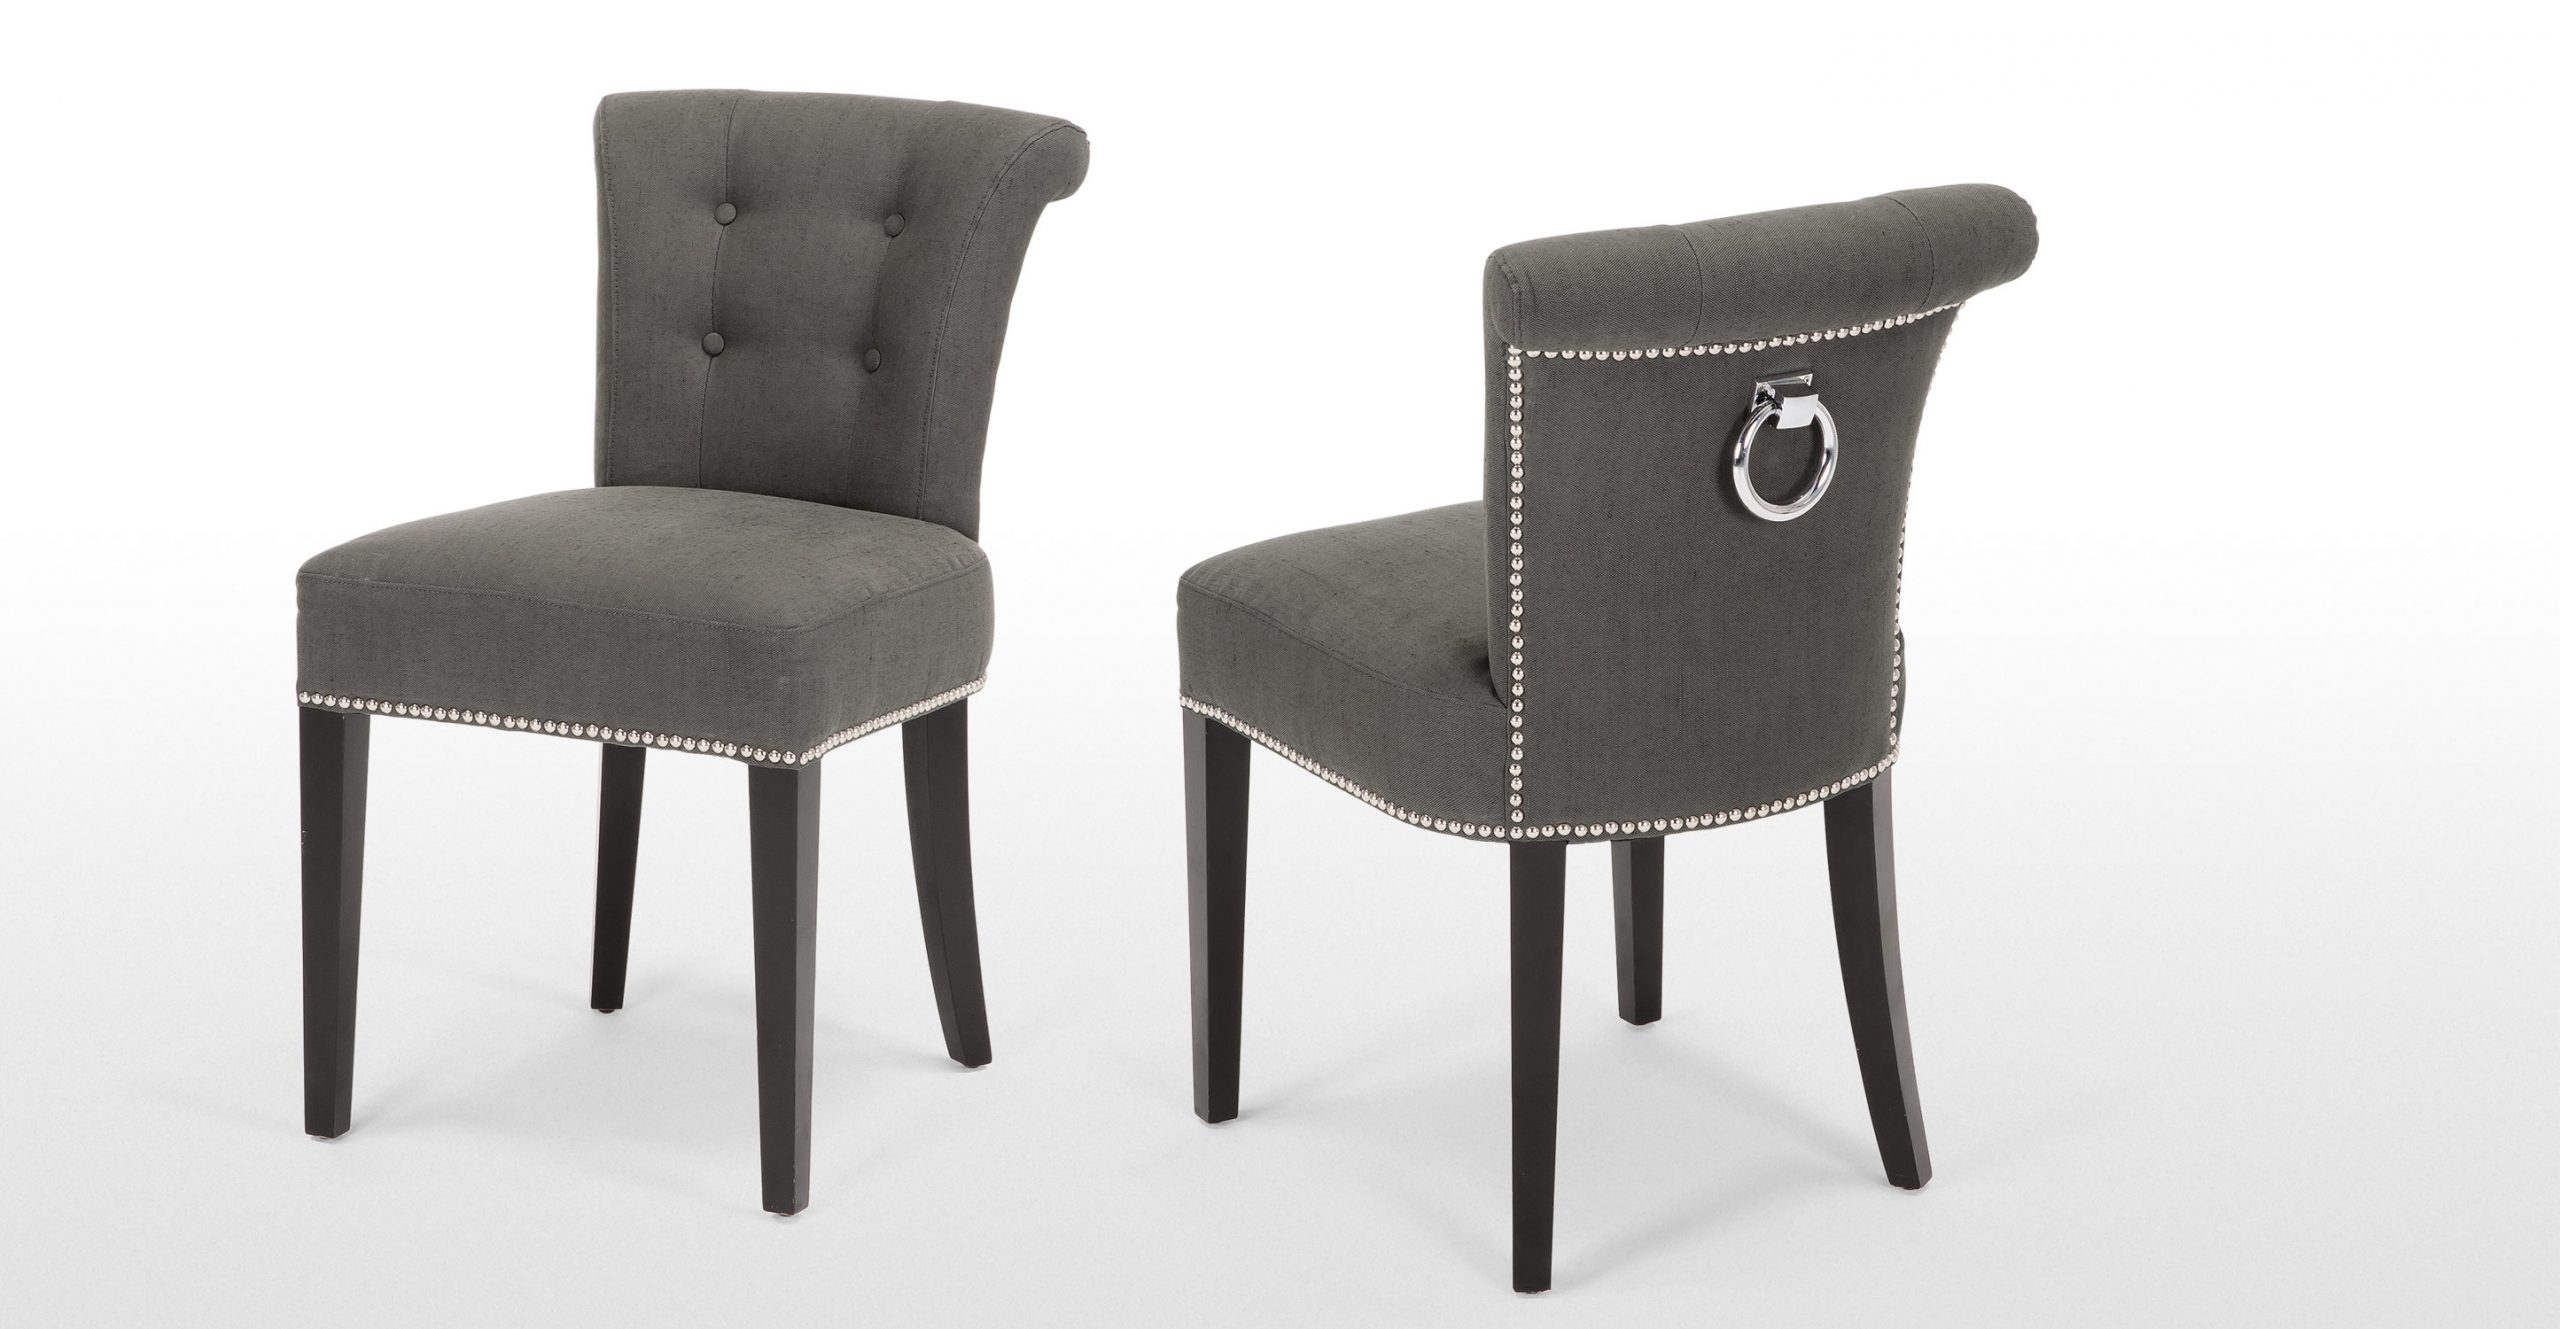 Grey Fabric Upholstered Dining Chairs Dining Chairs Design pertaining to sizing 2889 X 1500